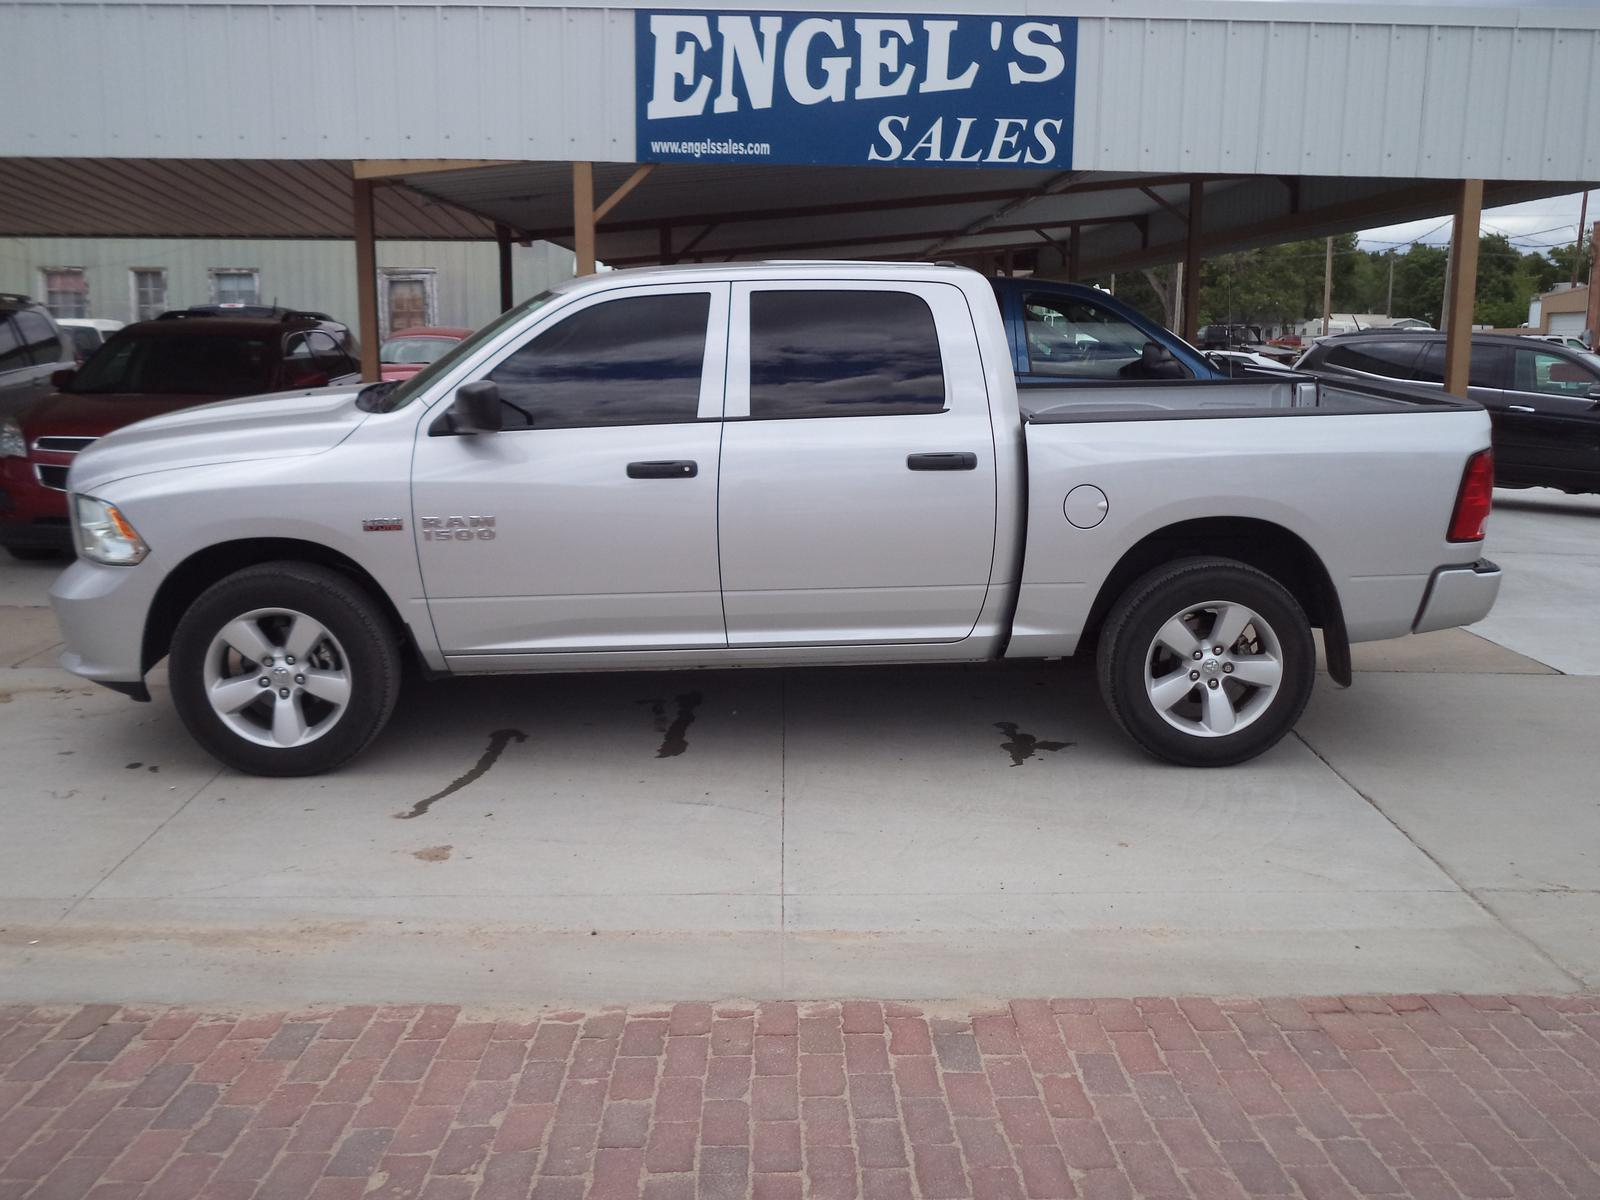 is exotic available miles own many clean now with this listing loaded ram sport owner coast at dodge gulf carfax auto dsc